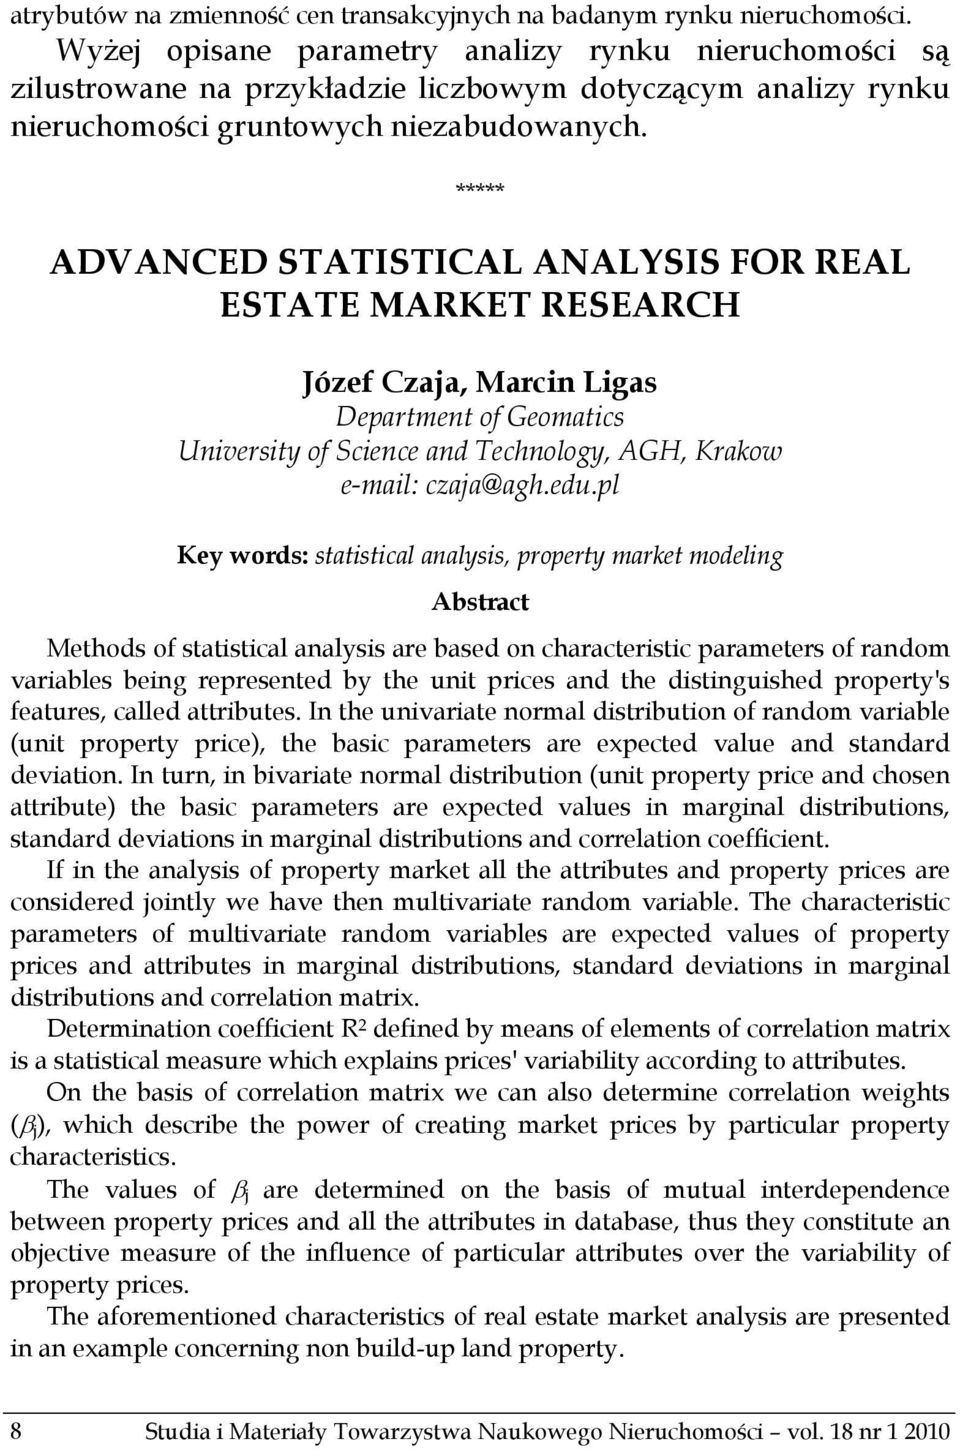 ***** ADVANCED STATISTICAL ANALYSIS FOR REAL ESTATE MARKET RESEARCH Józef Czaja, Marcin Ligas Department of Geomatics University of Science and Technology, AGH, Krakow e-mail: czaja@agh.edu.